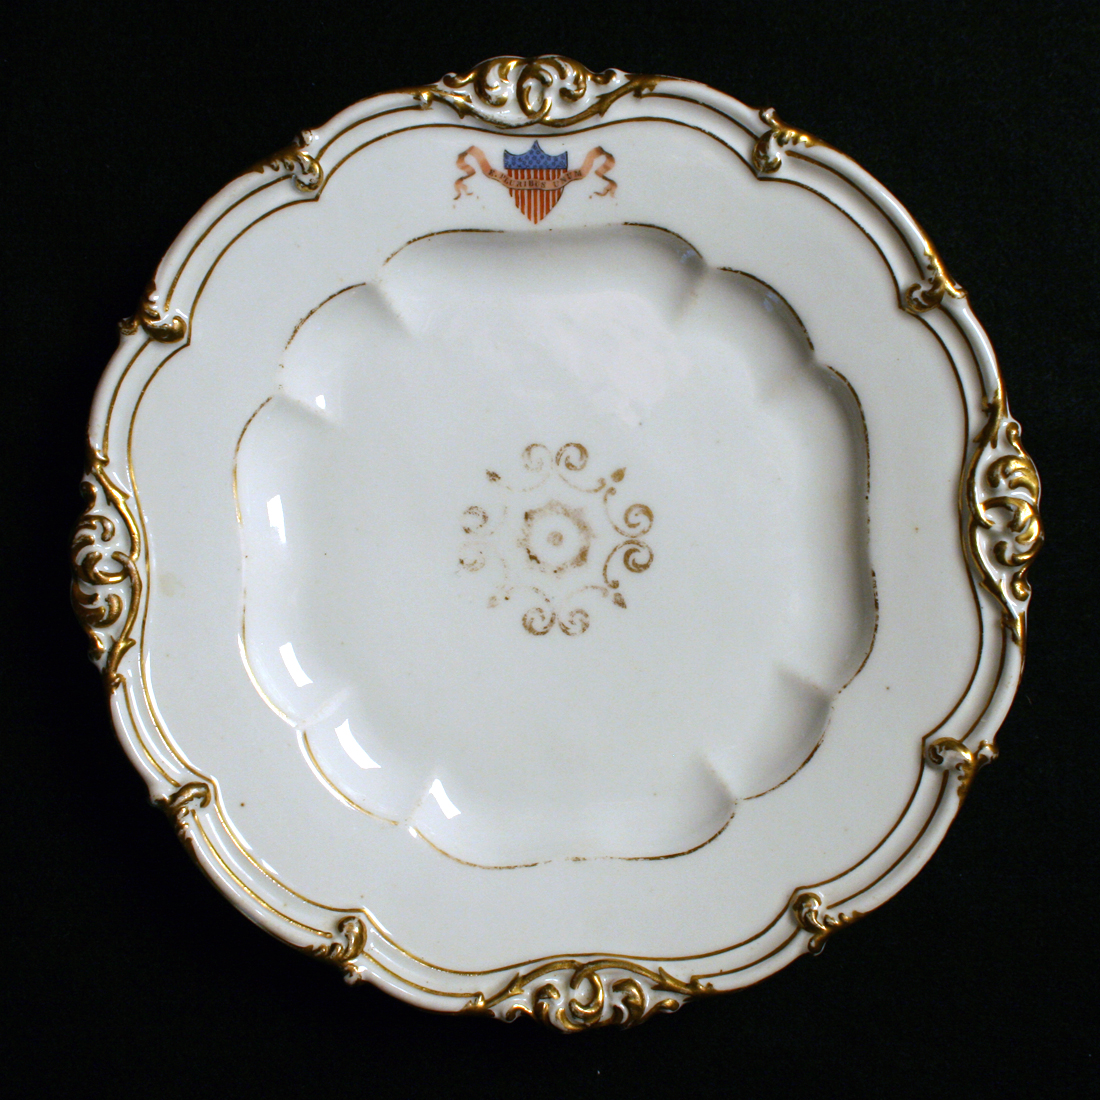 POLK DINNER PLATE WHITE HOUSE CHINA POLK CHINA THE RALEIGH DEGEER AMYX COLLECTION THE AMERICAN HERITAGE COLLECTION 